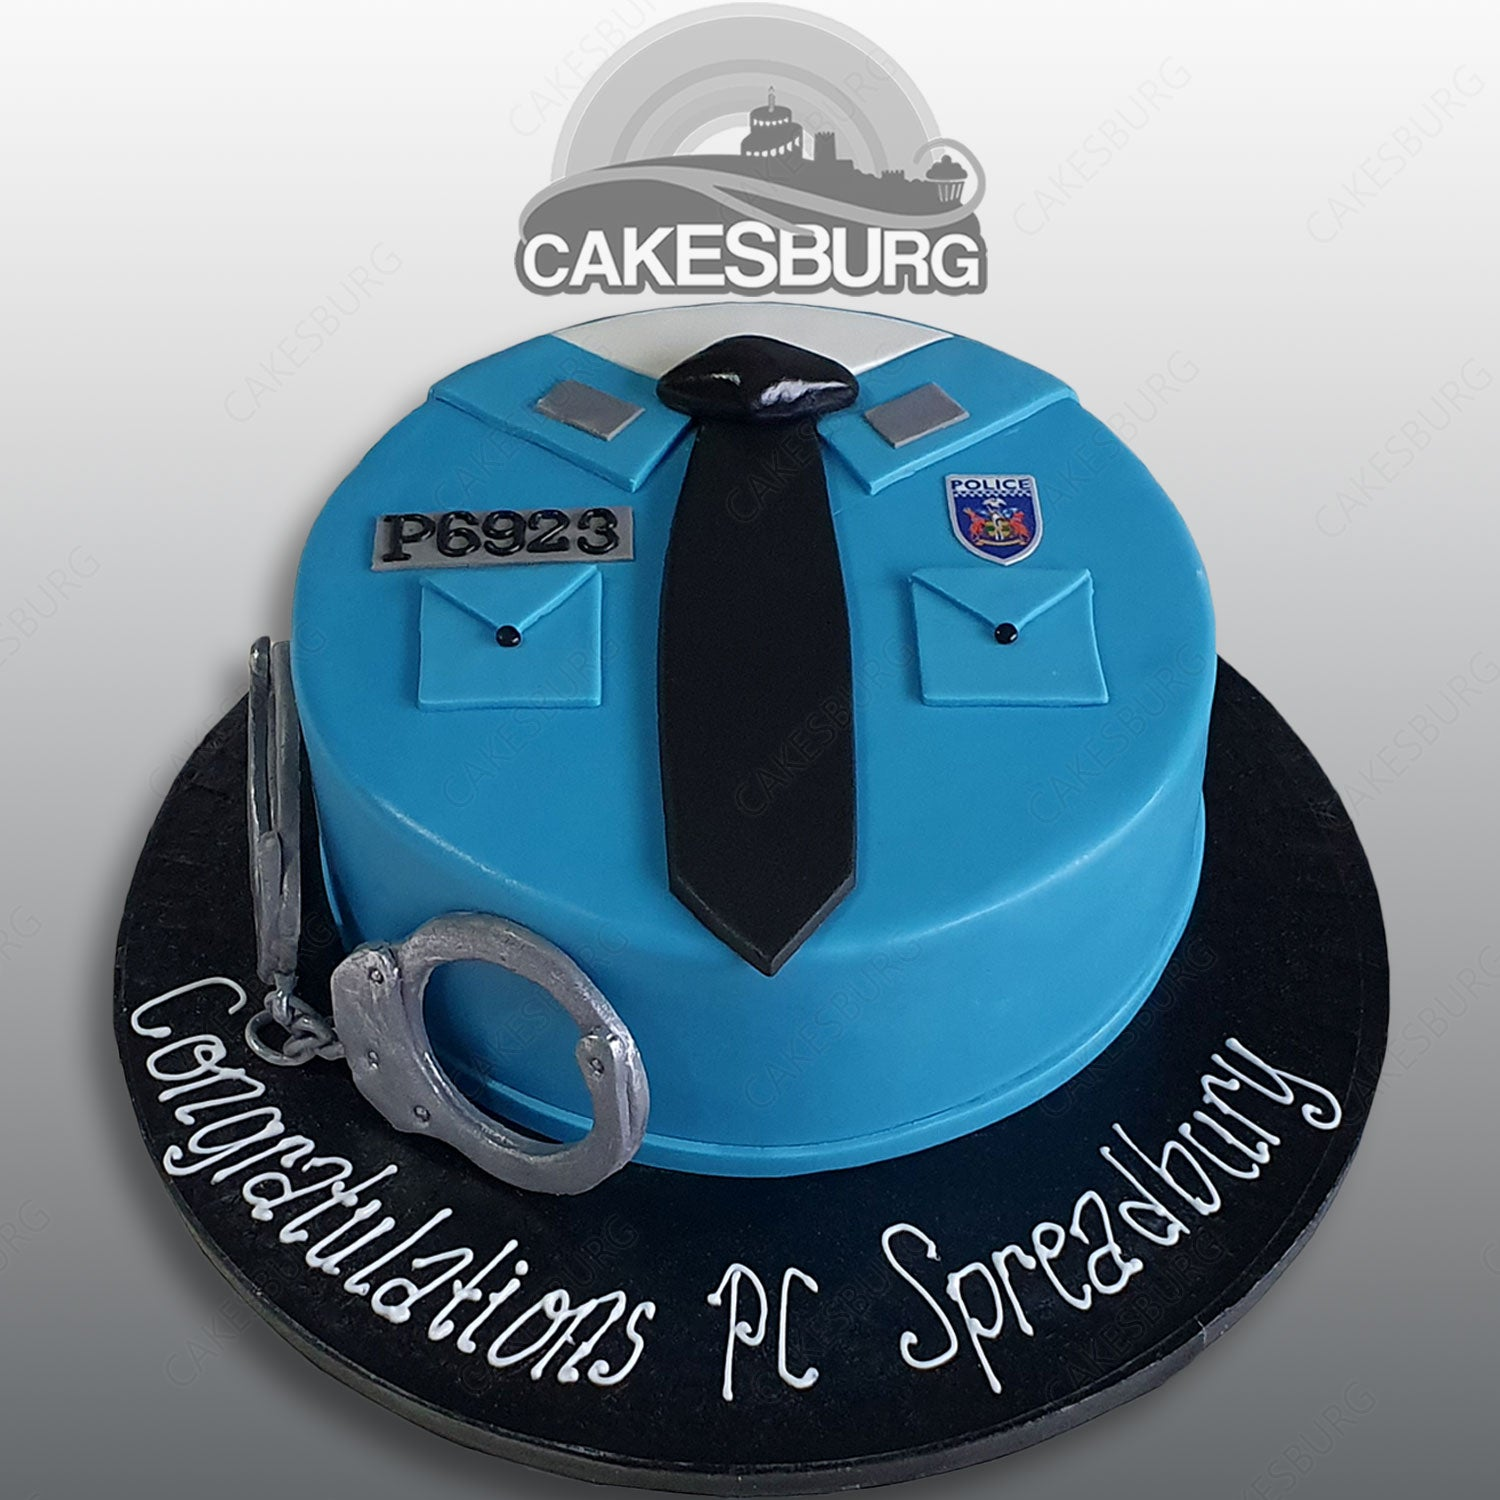 Swell Police Officer Cake Cakesburg Online Premium Cake Shop Funny Birthday Cards Online Alyptdamsfinfo